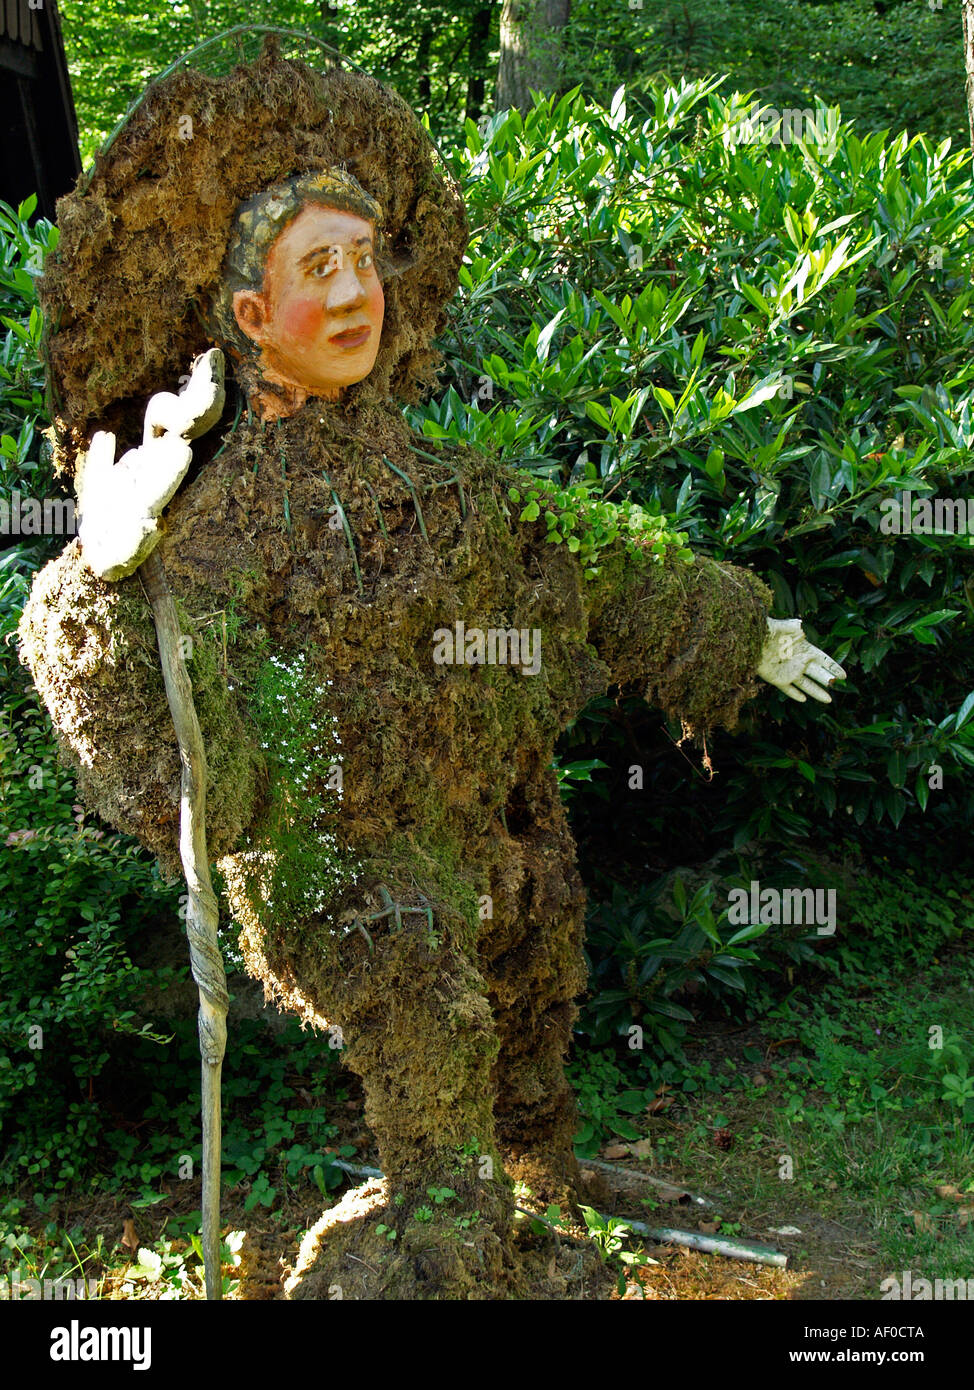 fable figure created made of moss in the flower park Mozirski Gaj in the town Mozirje in the in the valley of the river Savinja - Stock Image